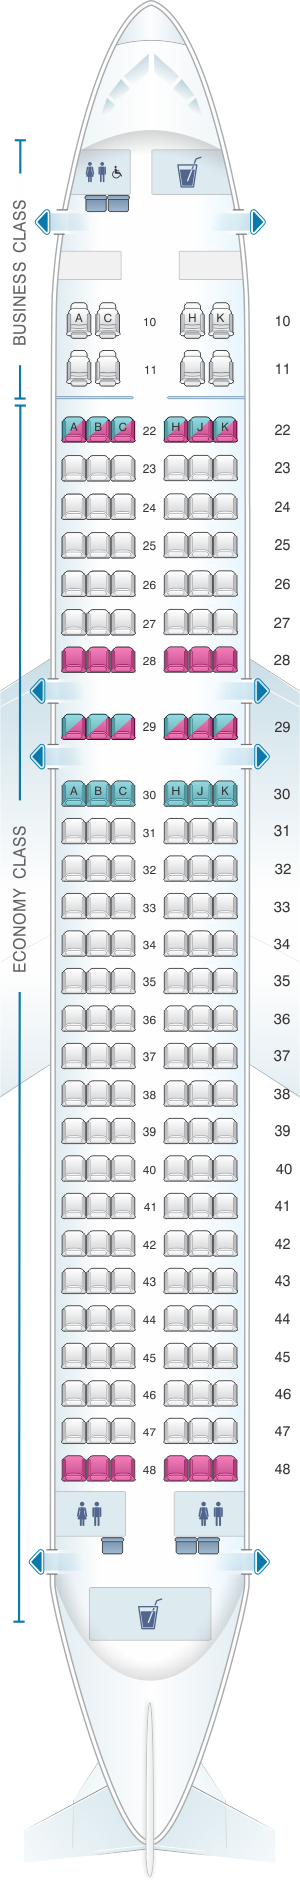 Seat map for Cathay Dragon Airbus A320 200